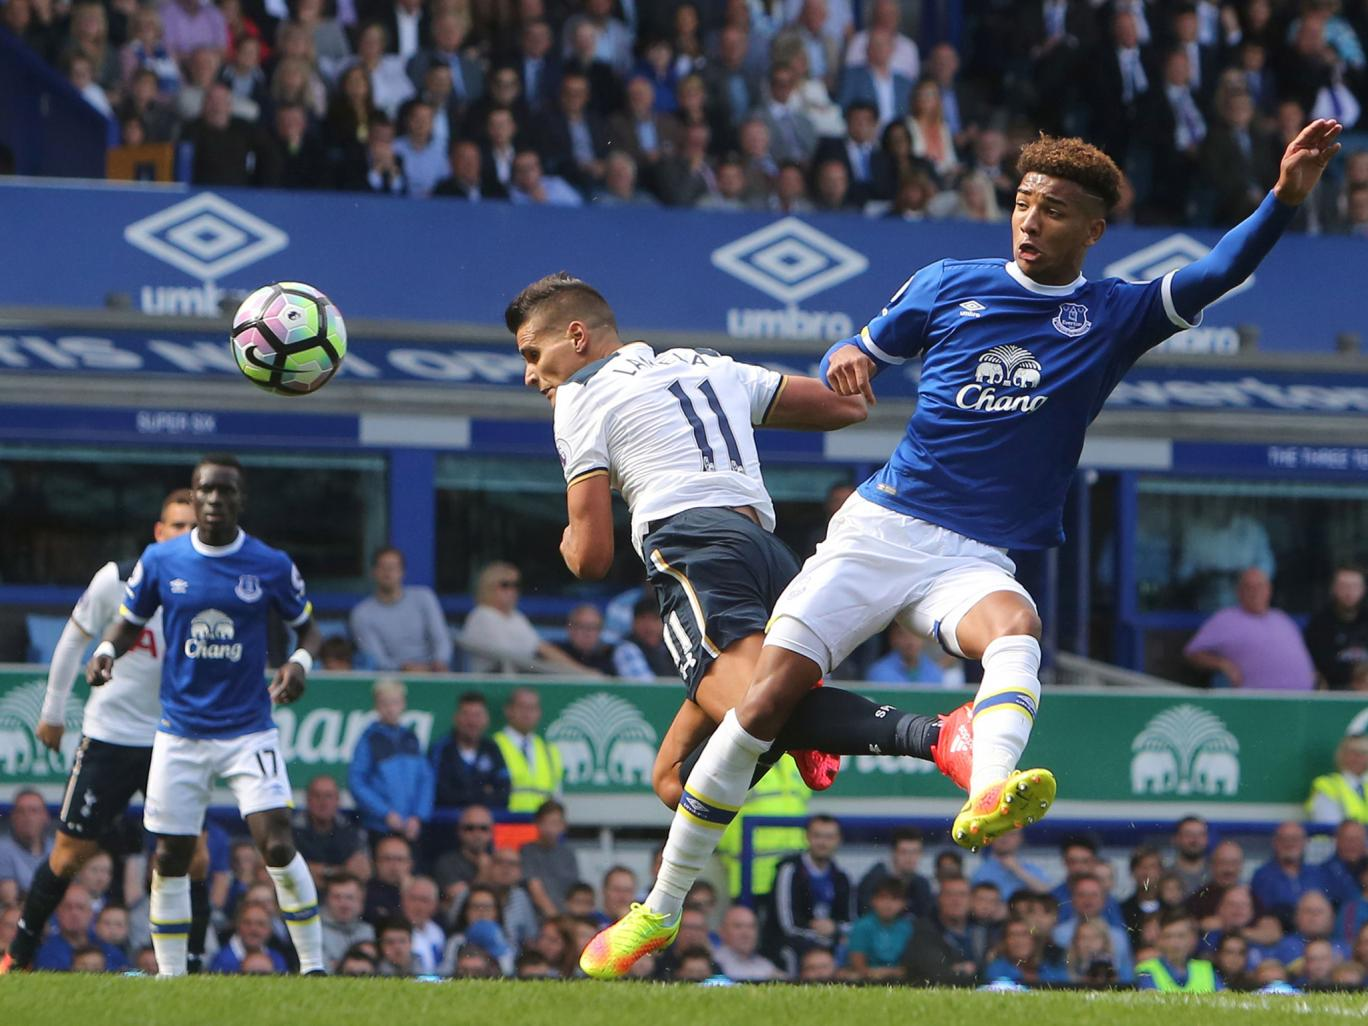 Lamela's opening goal epitomized his industry and technique. (Photo via Getty Images)